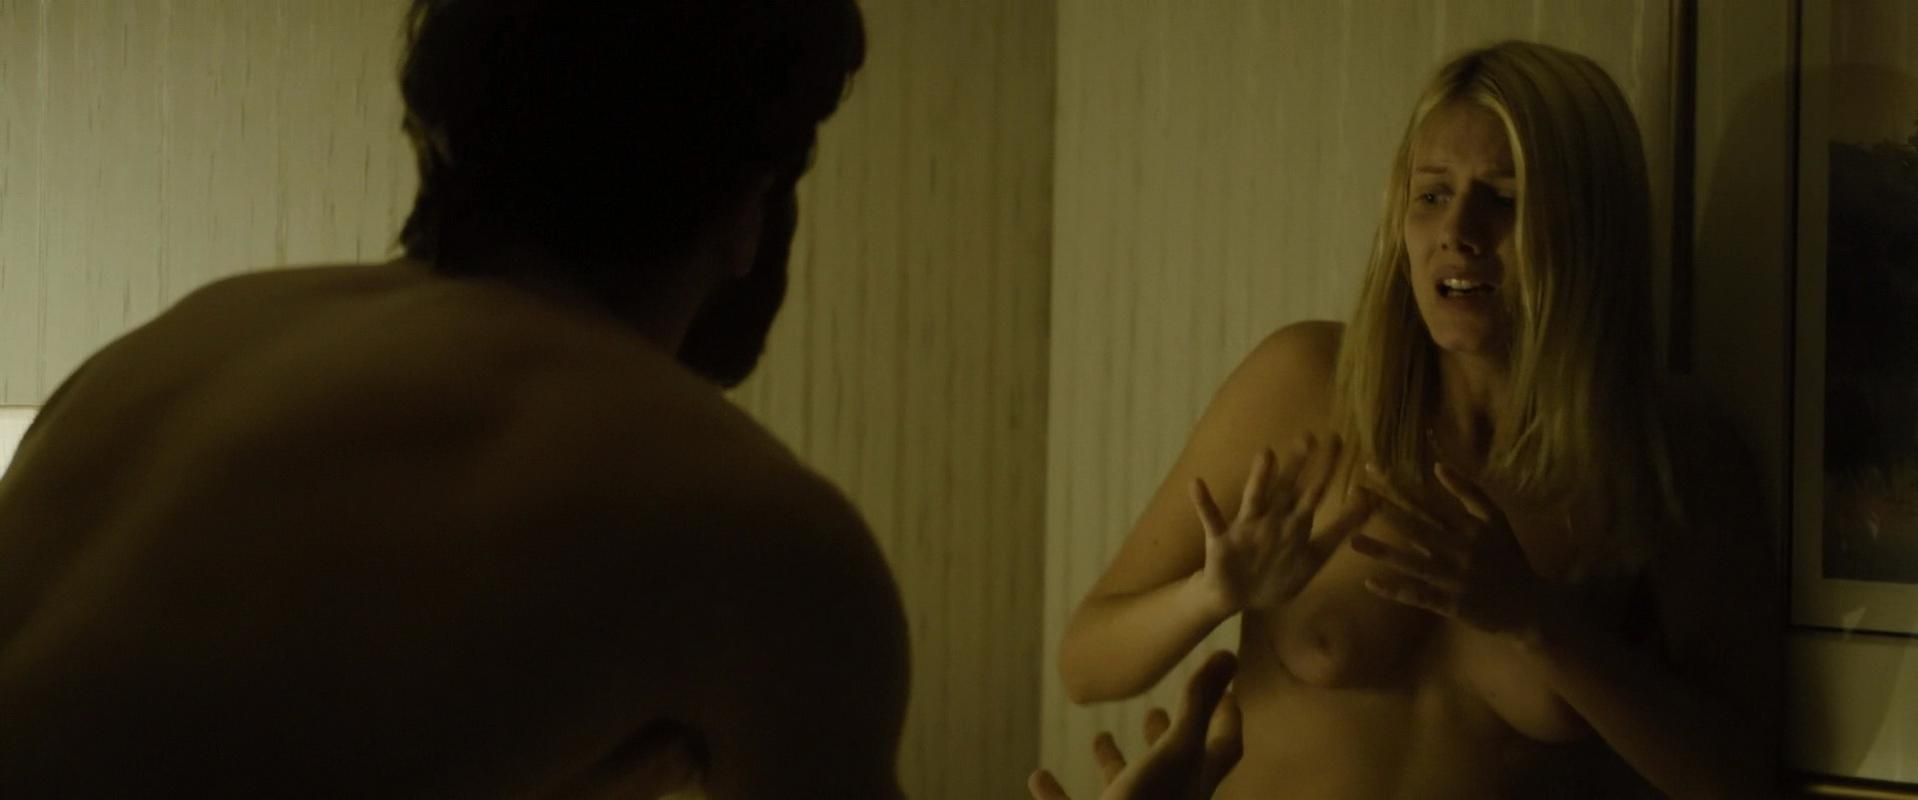 Melanie Laurent nude - Enemy (2013)